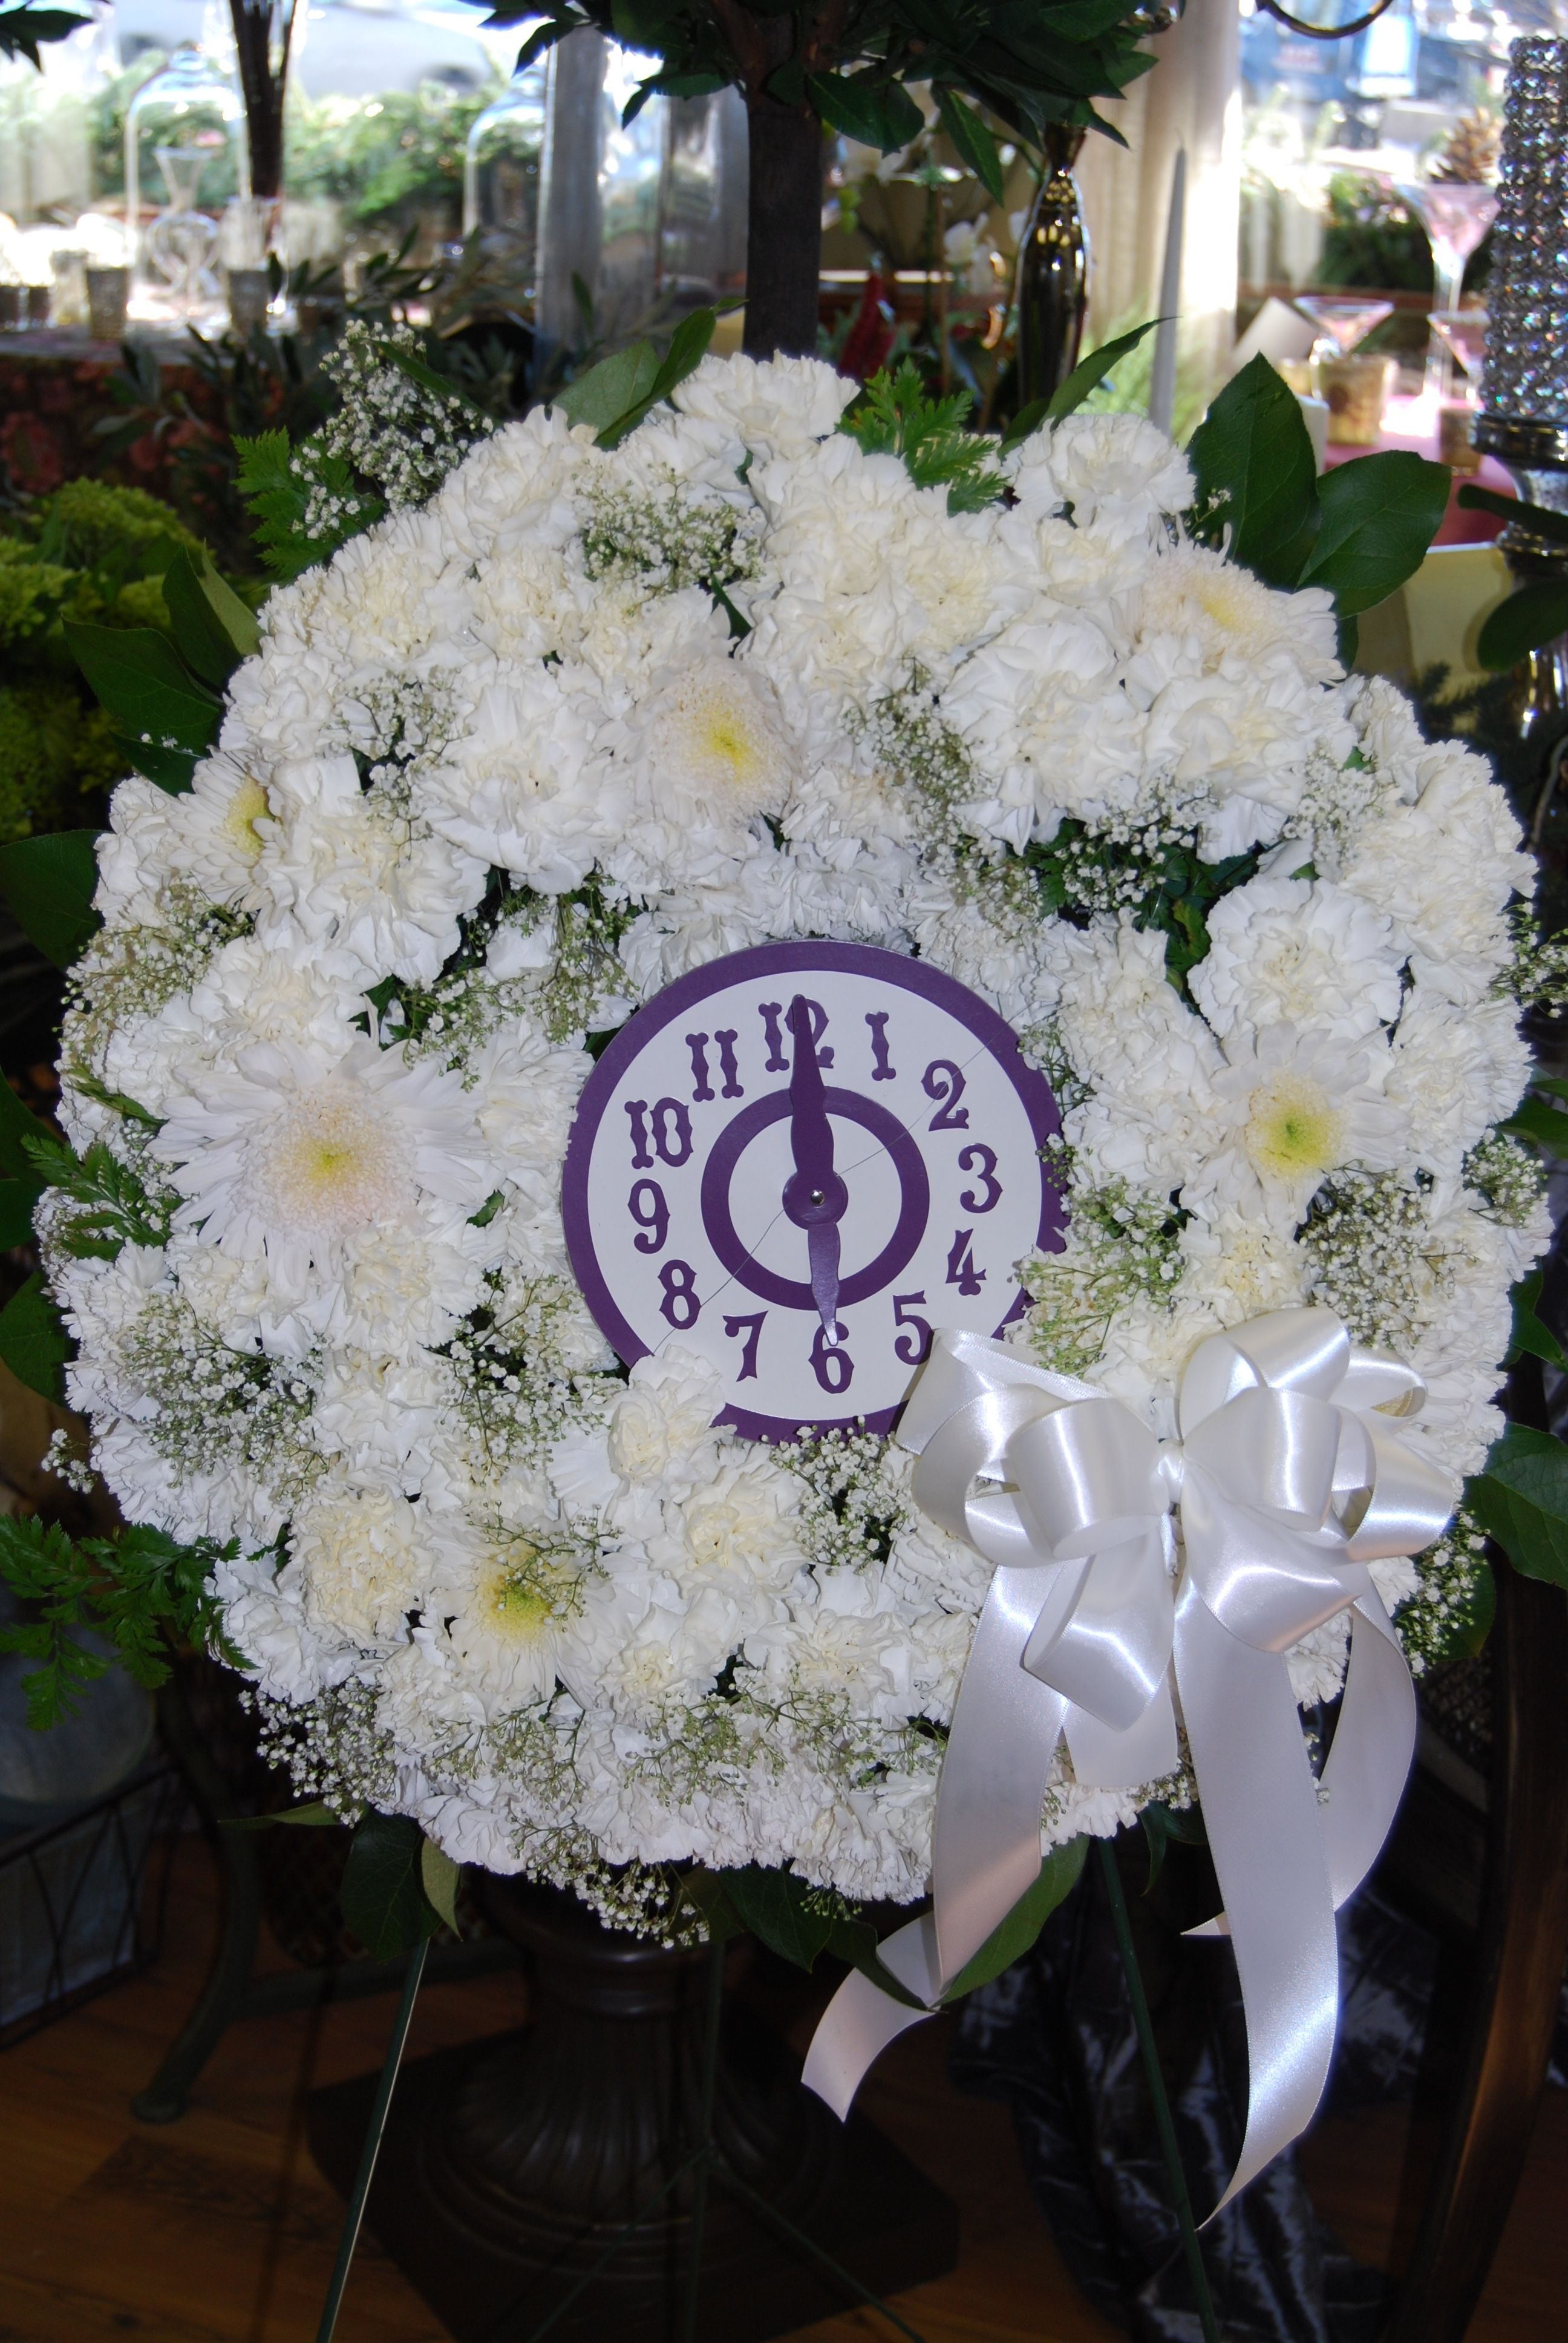 Gypsy funeral time of death clock flower arrangement sympathy gypsy funeral time of death clock flower arrangement gypsy clock death sympathy flowers izmirmasajfo